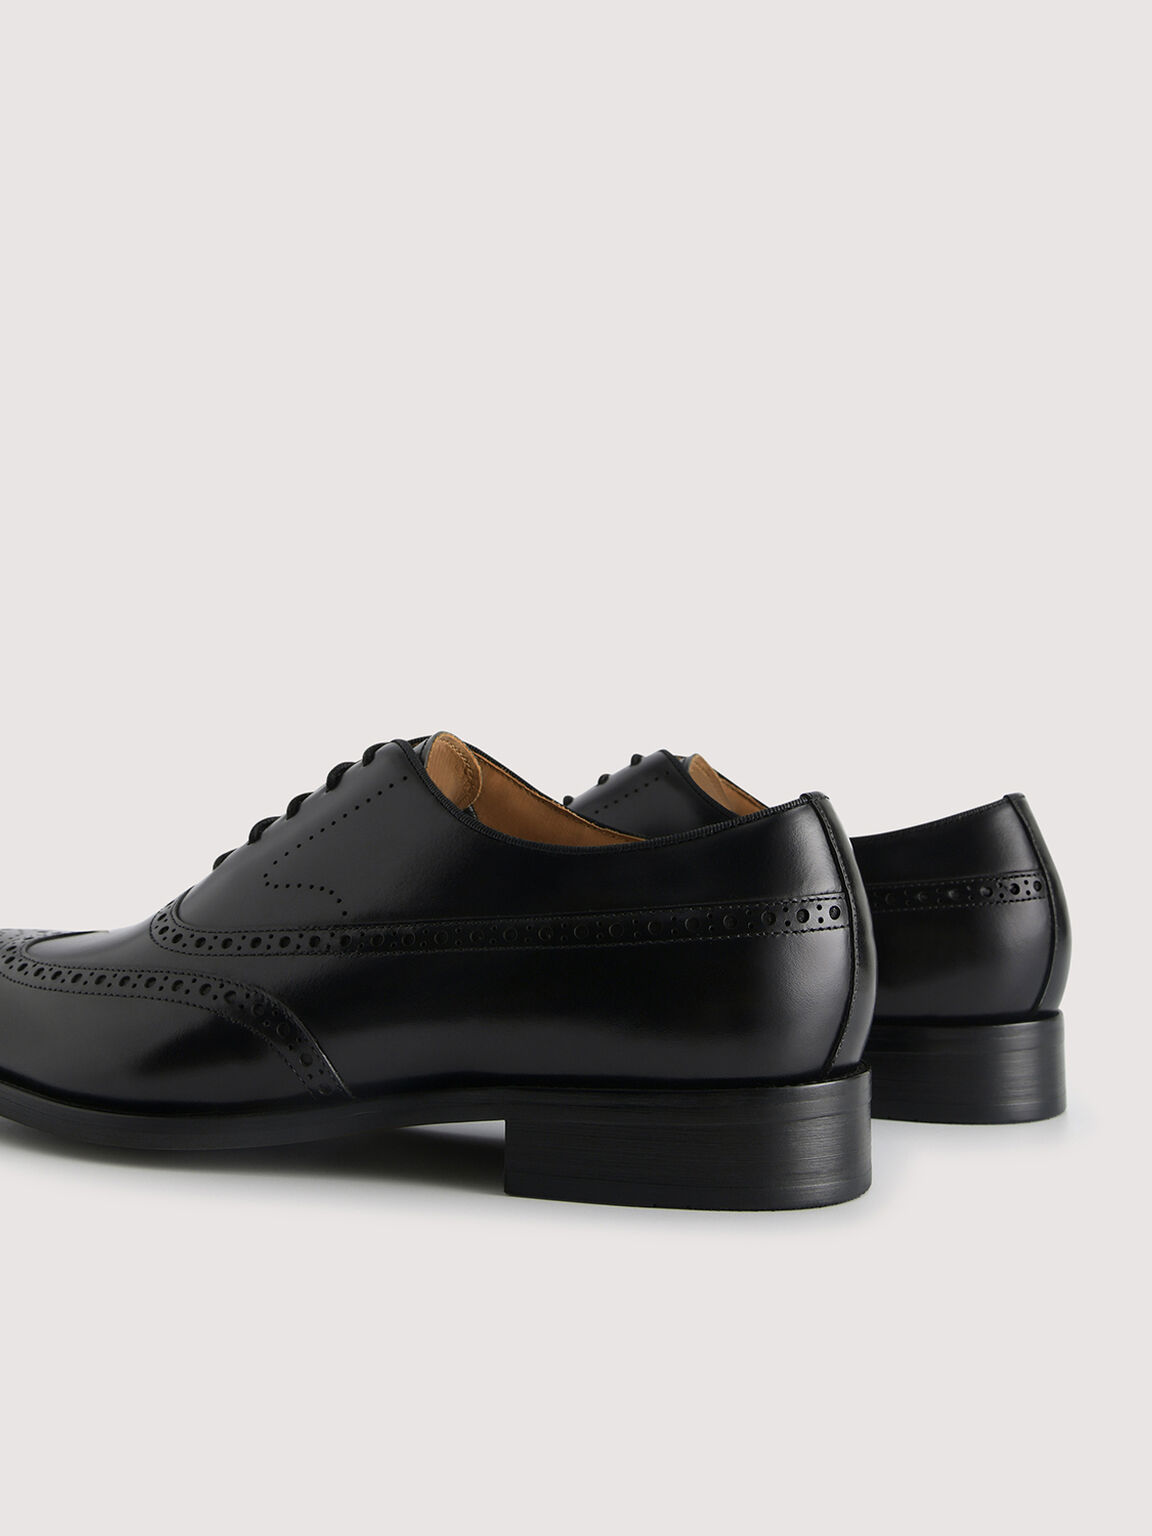 Brogue Leather Loafers, Black, hi-res